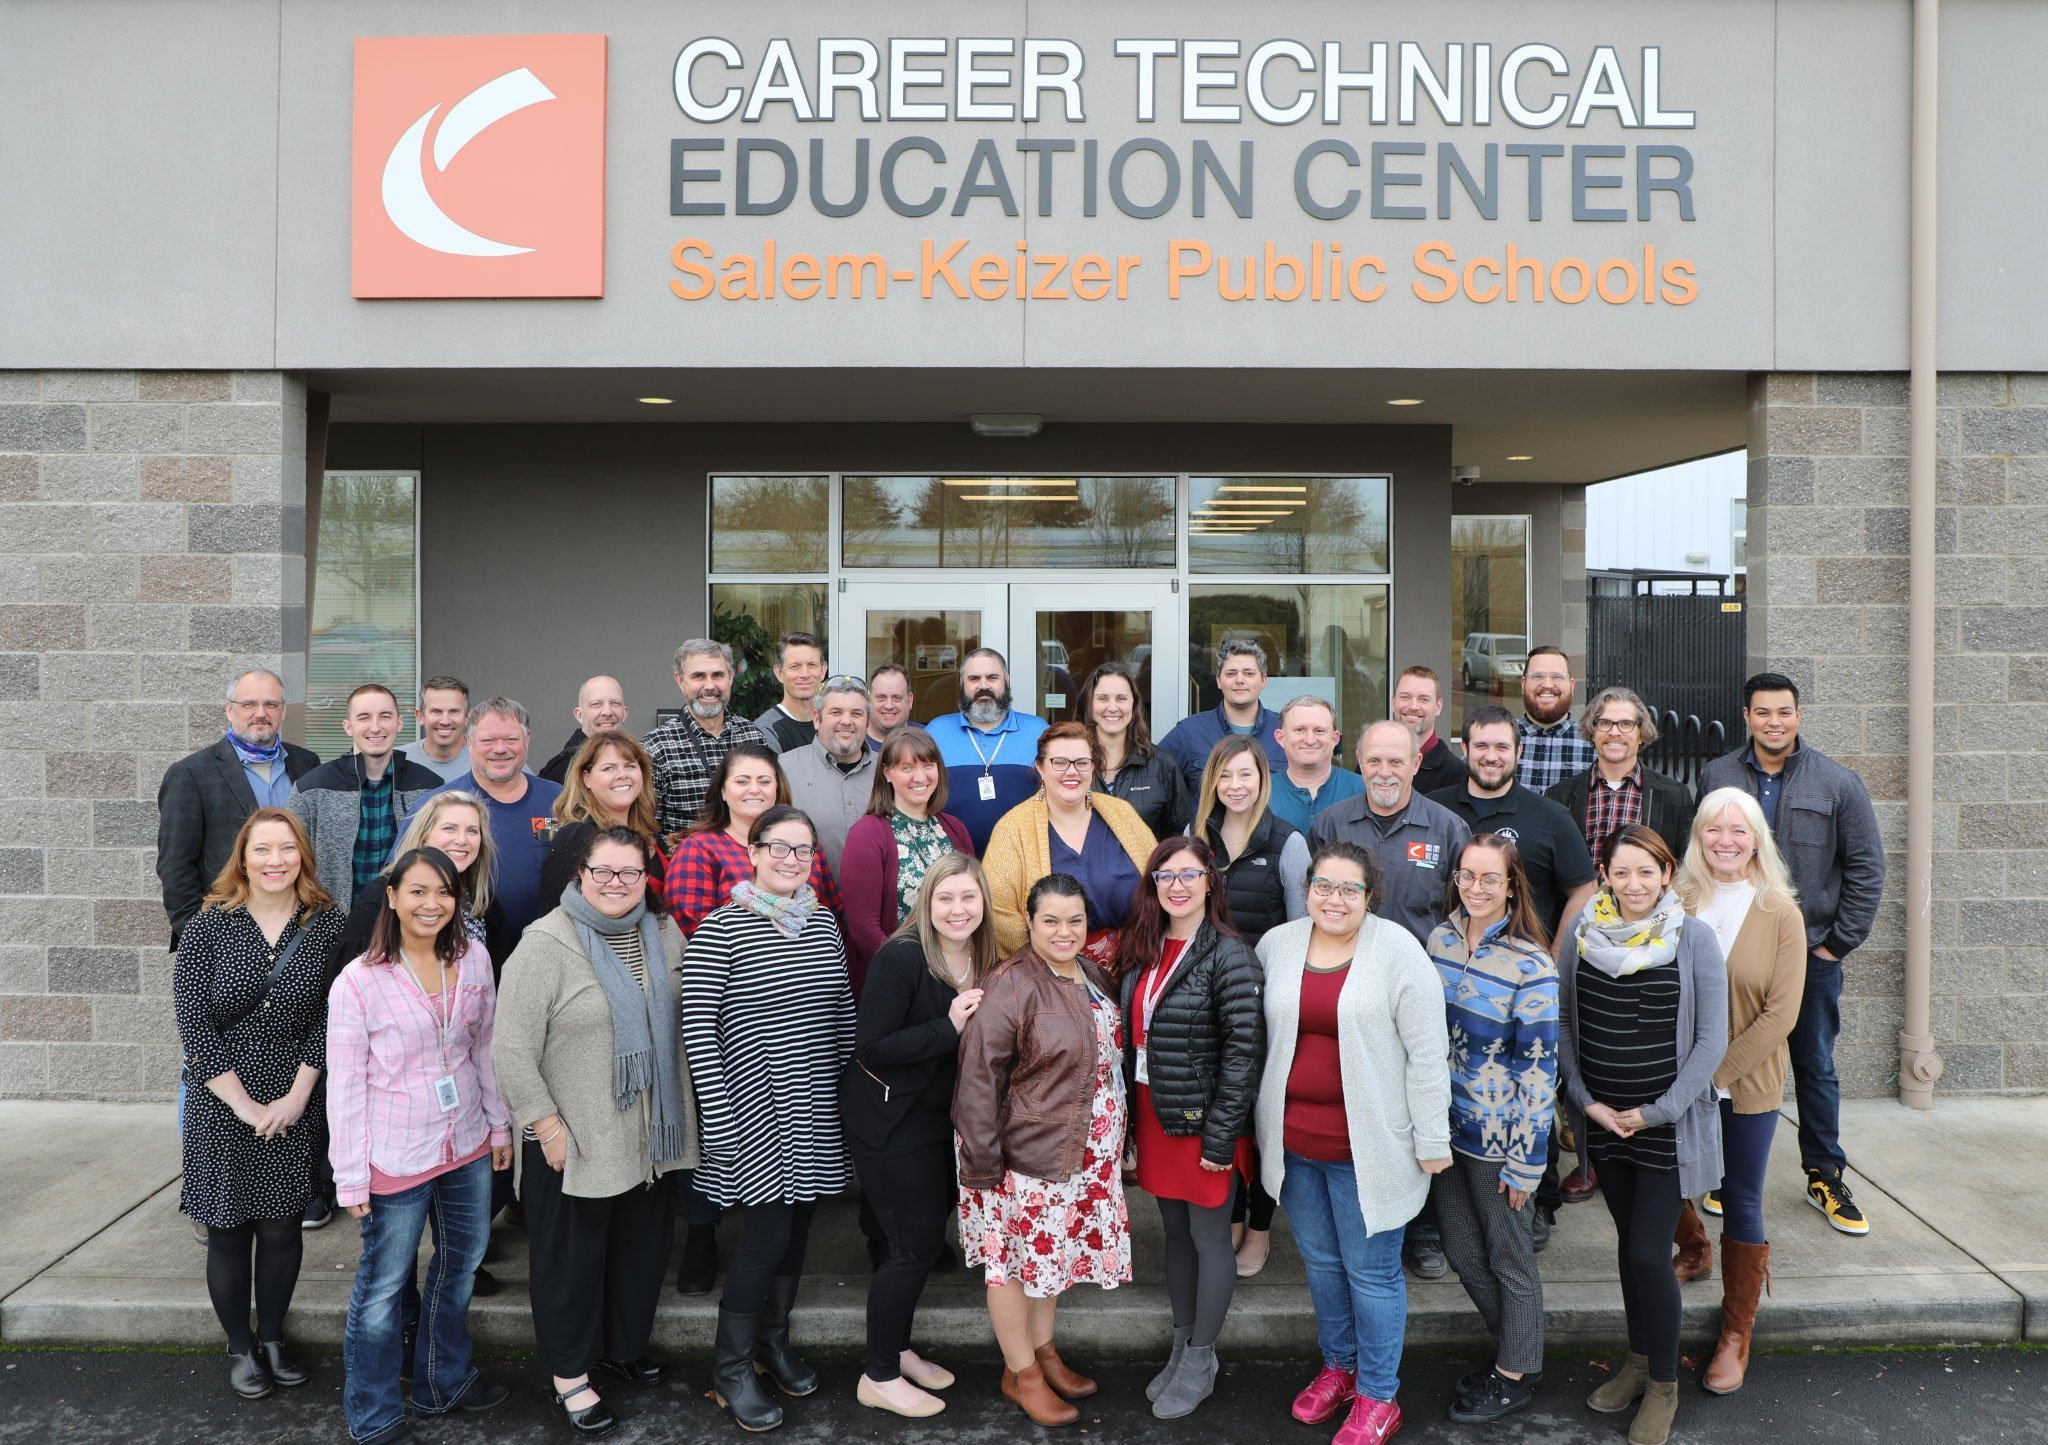 CTEC Career Technical Education Center through Salem-Keizer Public Schools prepares students for high-skill, high-wage, and high-demand careers, while developing the professional skills, technical knowledge, academic foundation and real-world experience to assure their success upon graduation.